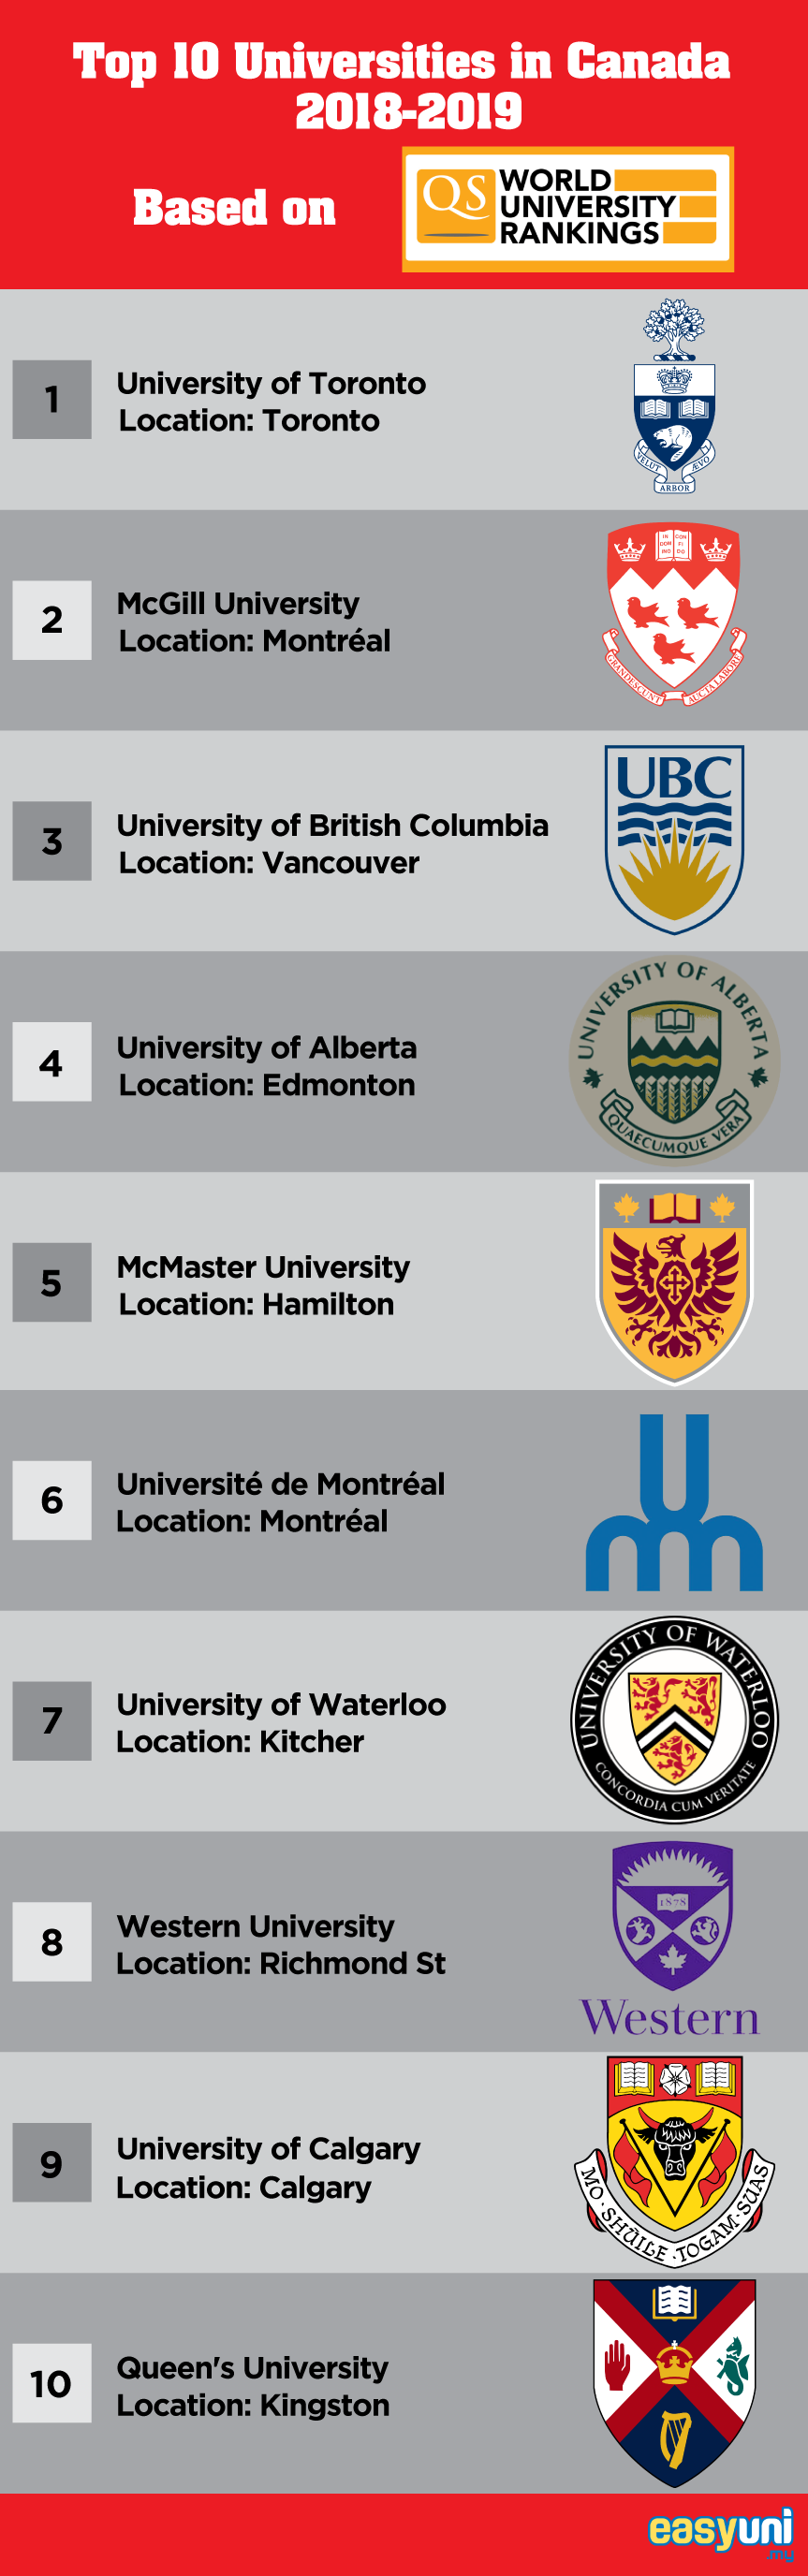 Top 10 Universities in Canada 2019